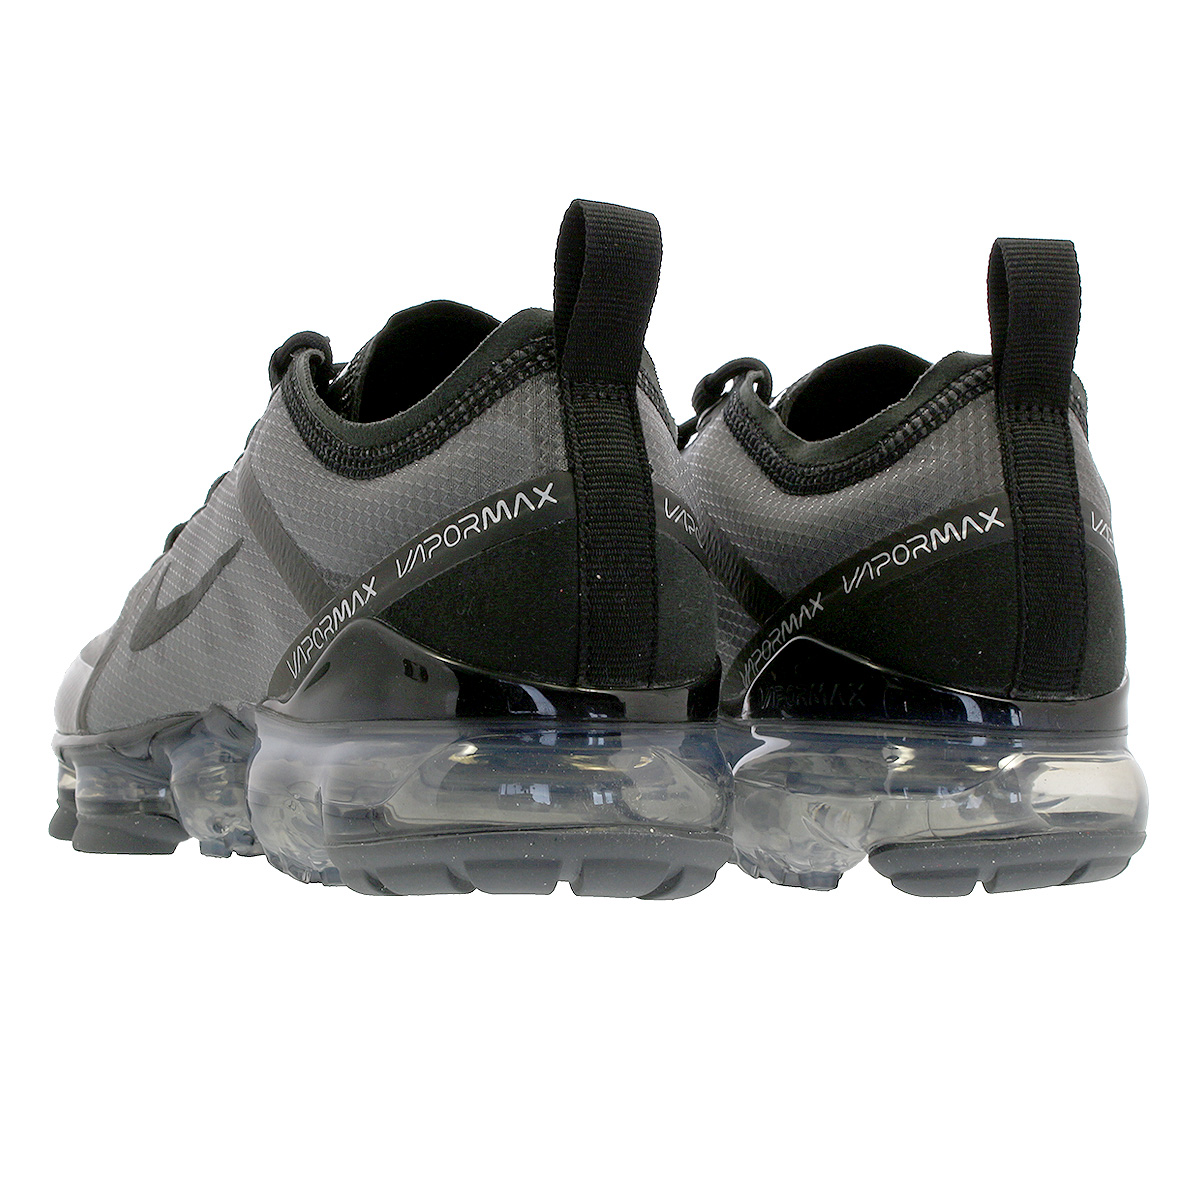 reputable site 1cc95 68cde ... NIKE AIR VAPORMAX 2019 GS Nike air vapor max 2019 GS BLACK BLACK BLACK  ...